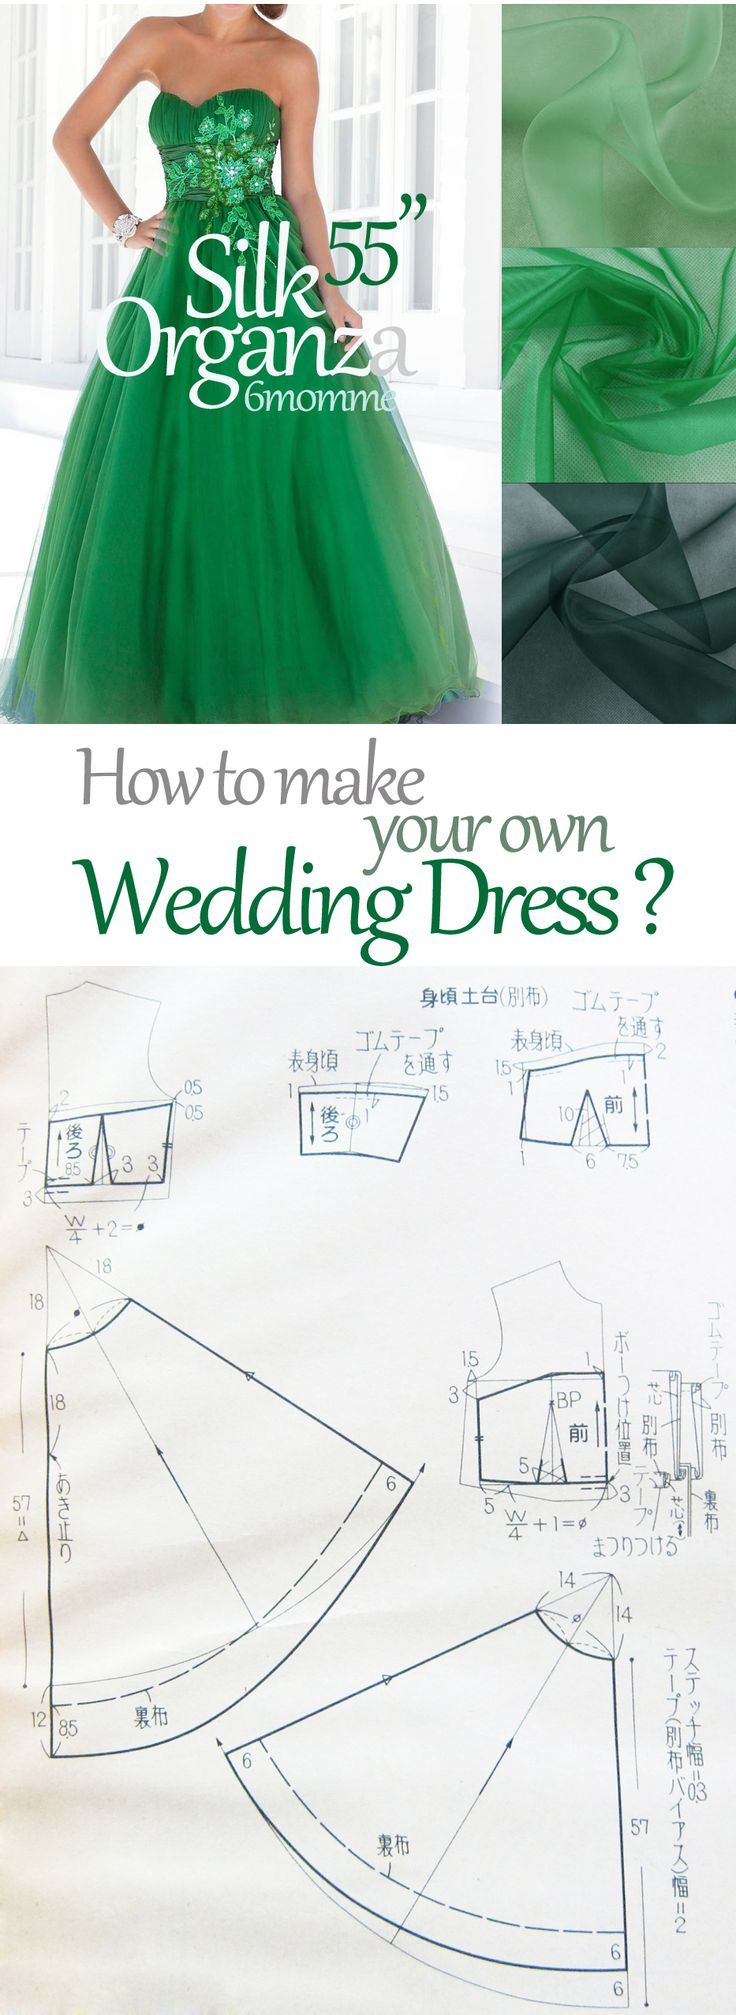 Fresh how to sew your own wedding dress DIY wedding dress pattern Free wedding dress